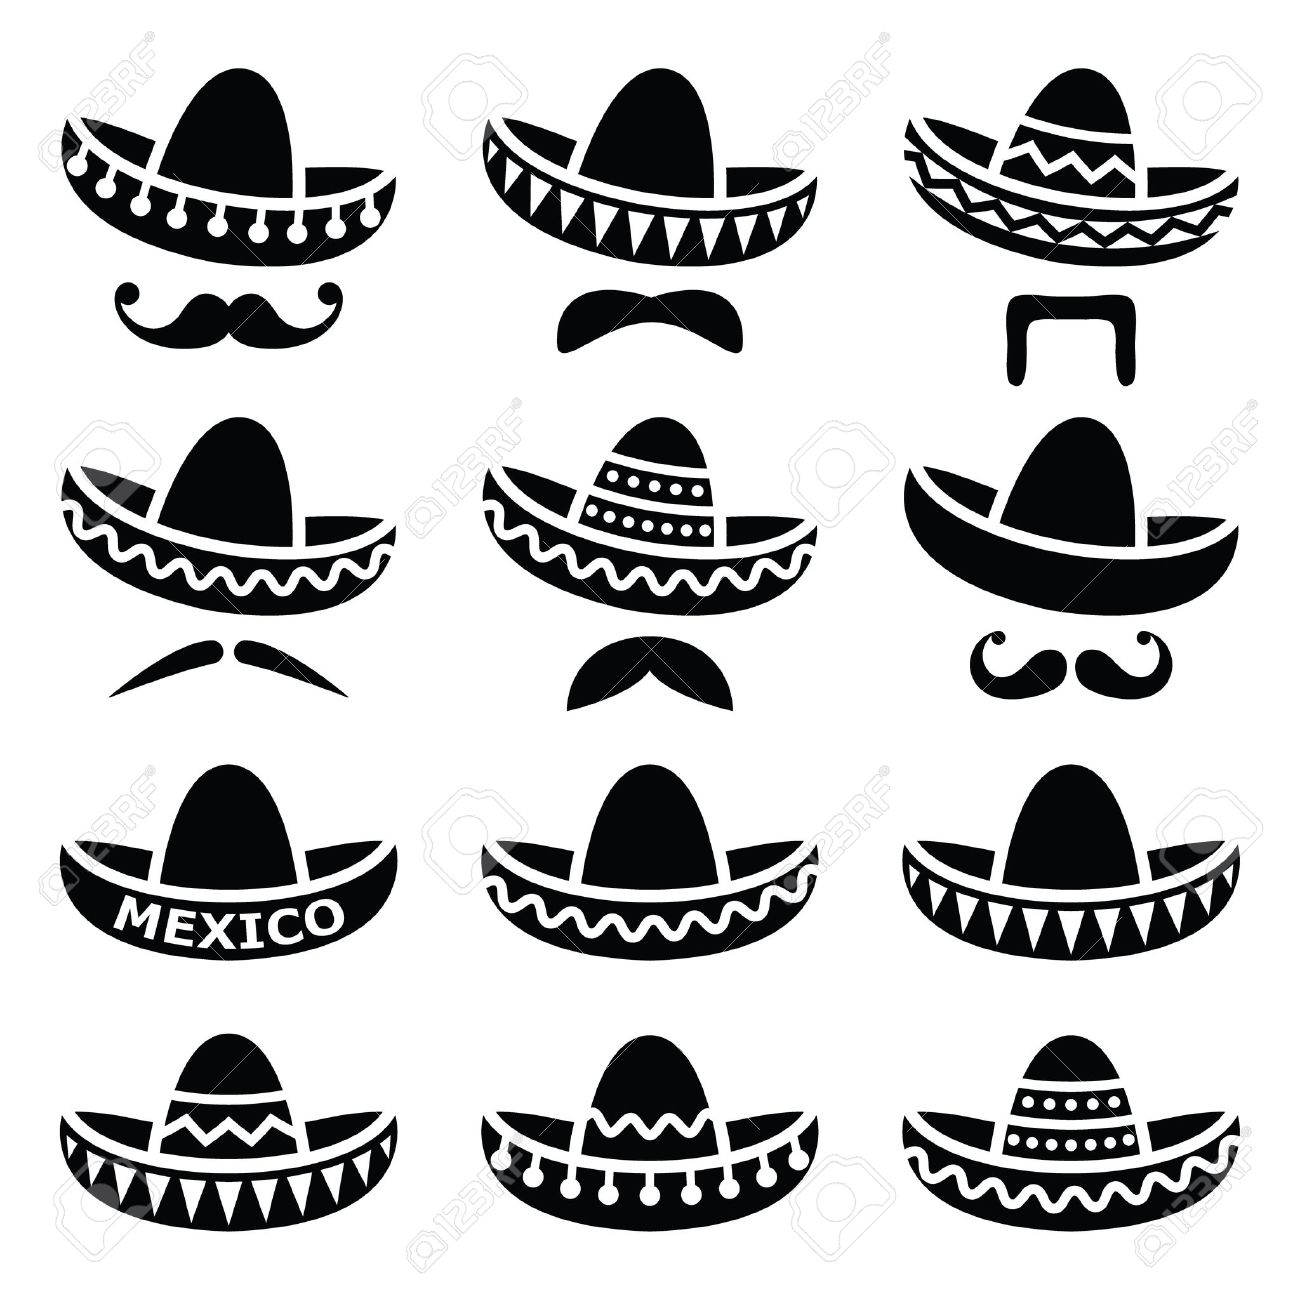 hight resolution of mexican sombrero hat with moustache or mustache icons stock vector 33491439